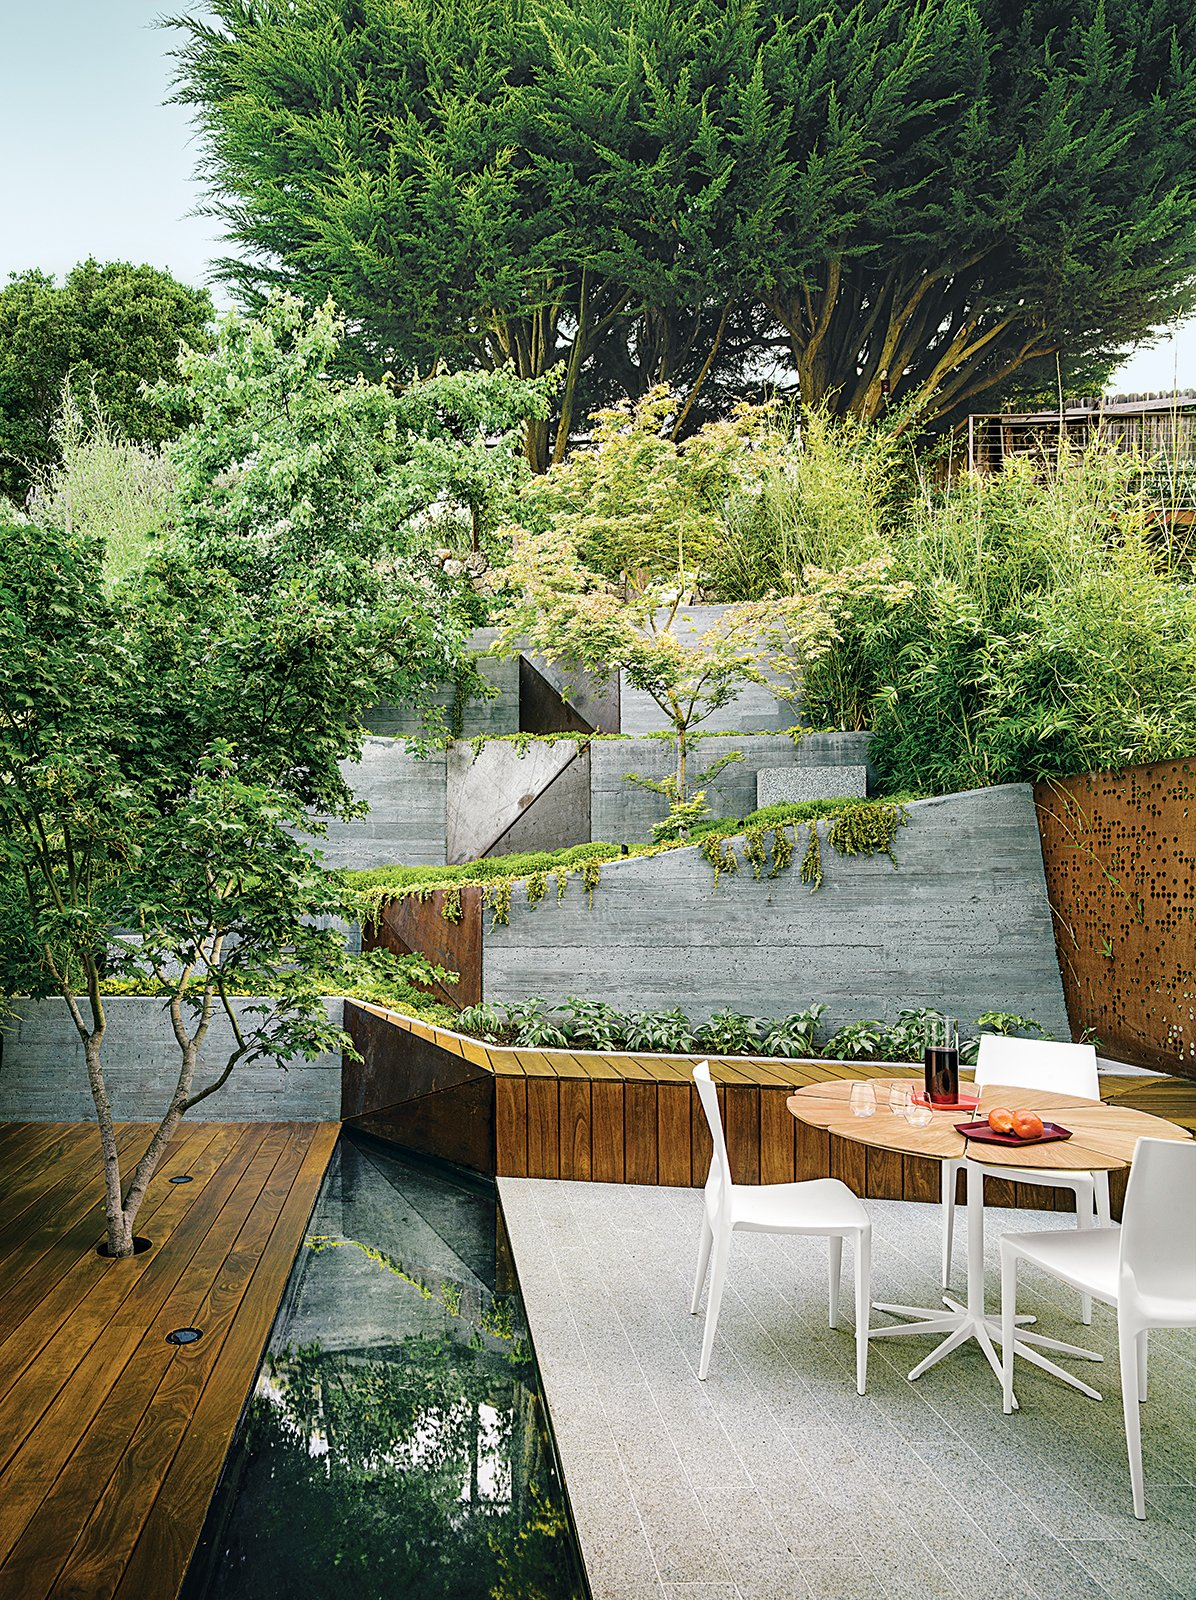 An Architect Sculpts Out a Tadao Ando-Inspired Backyard ... on Open Backyard Ideas id=55175